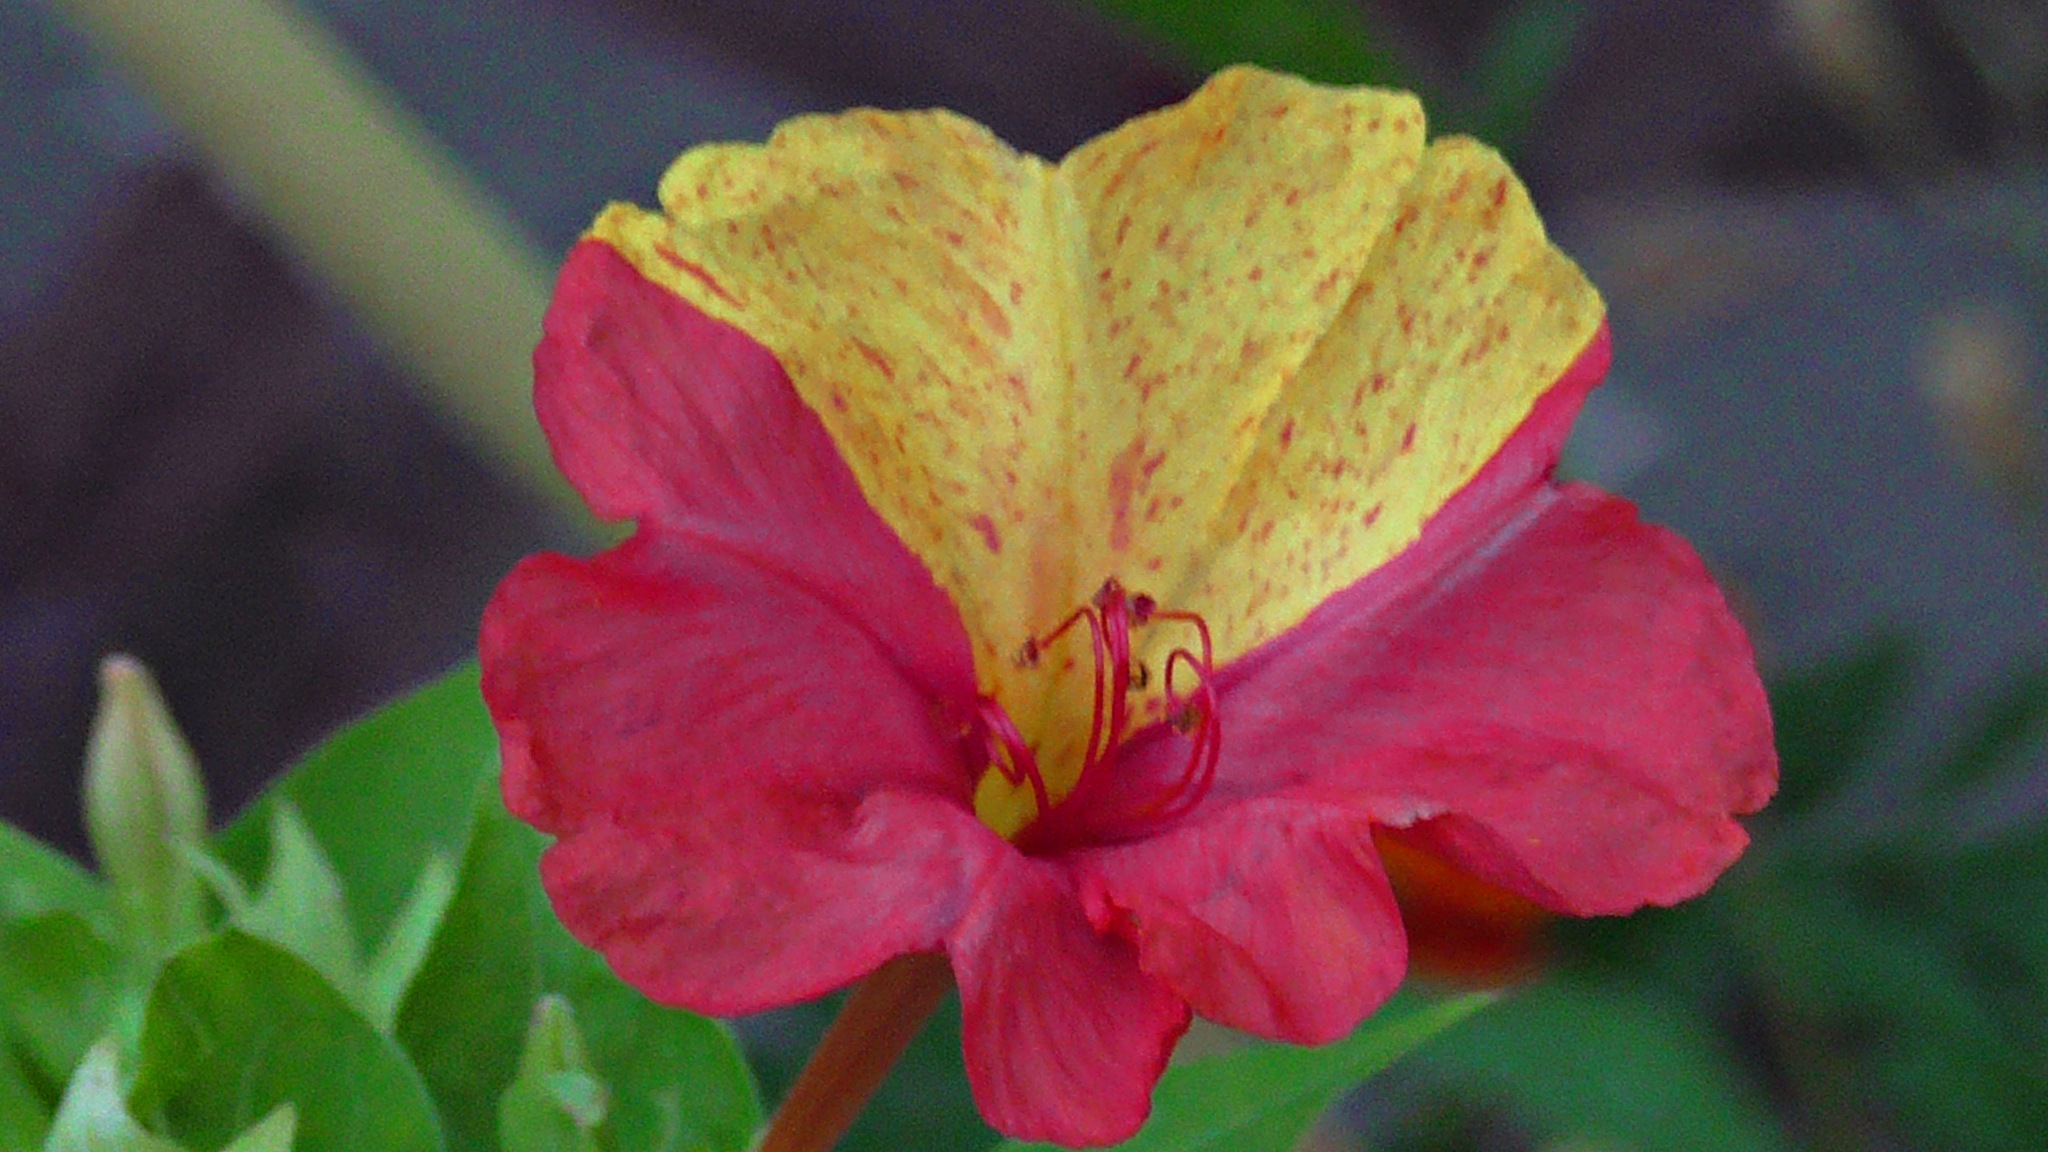 Blooming flower in the evening by evakalocsay